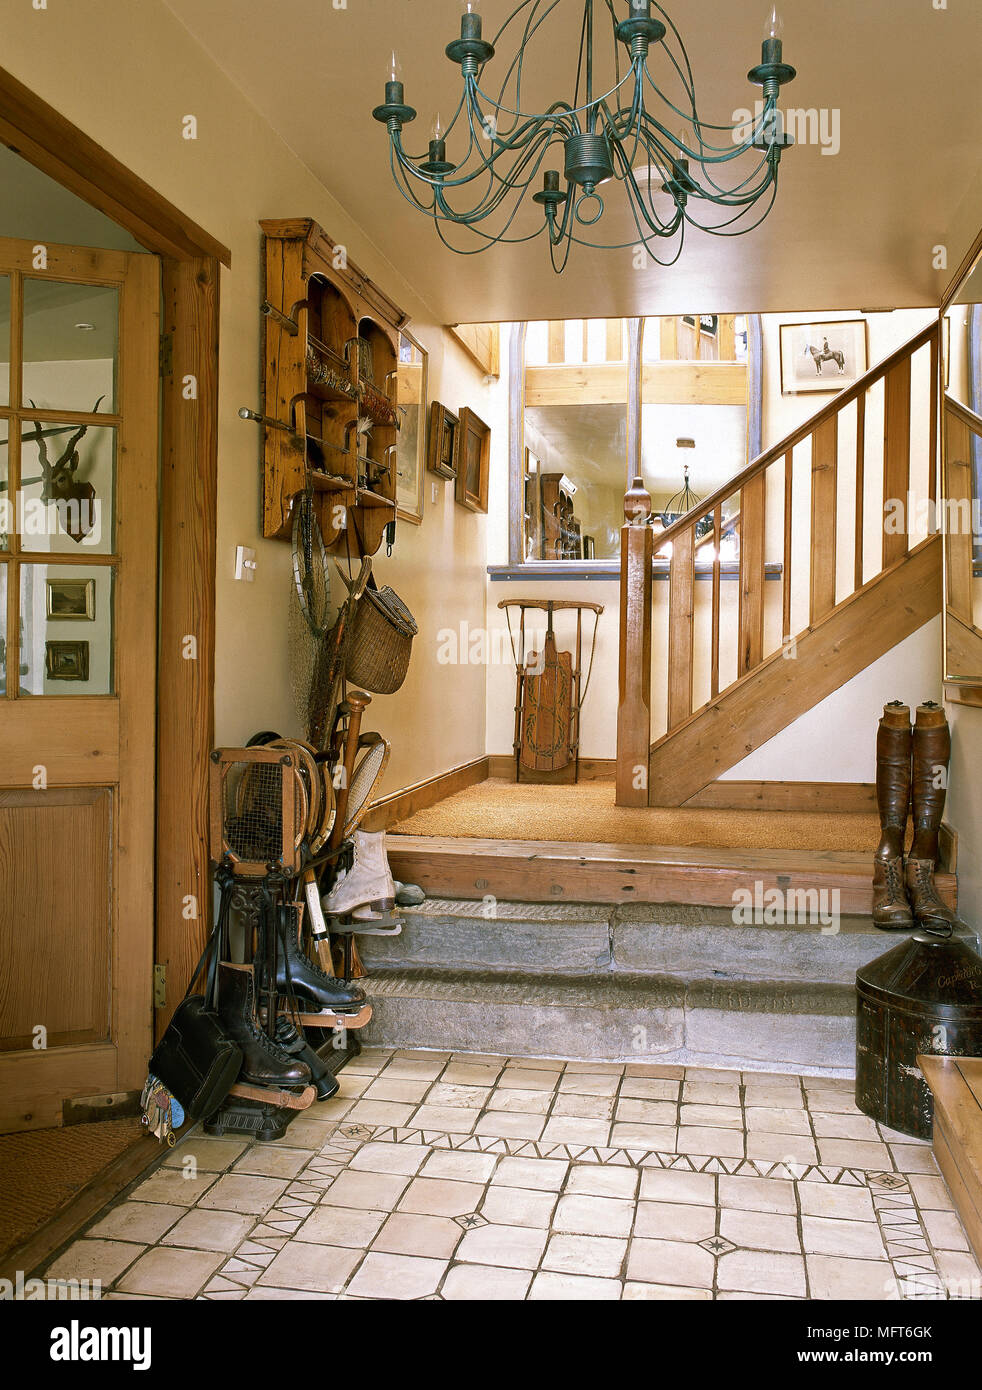 Country Entryway With Mosaic Tile Floor, Wooden Stairway, Chandelier, And A  Variety Of Boots And Shoes.